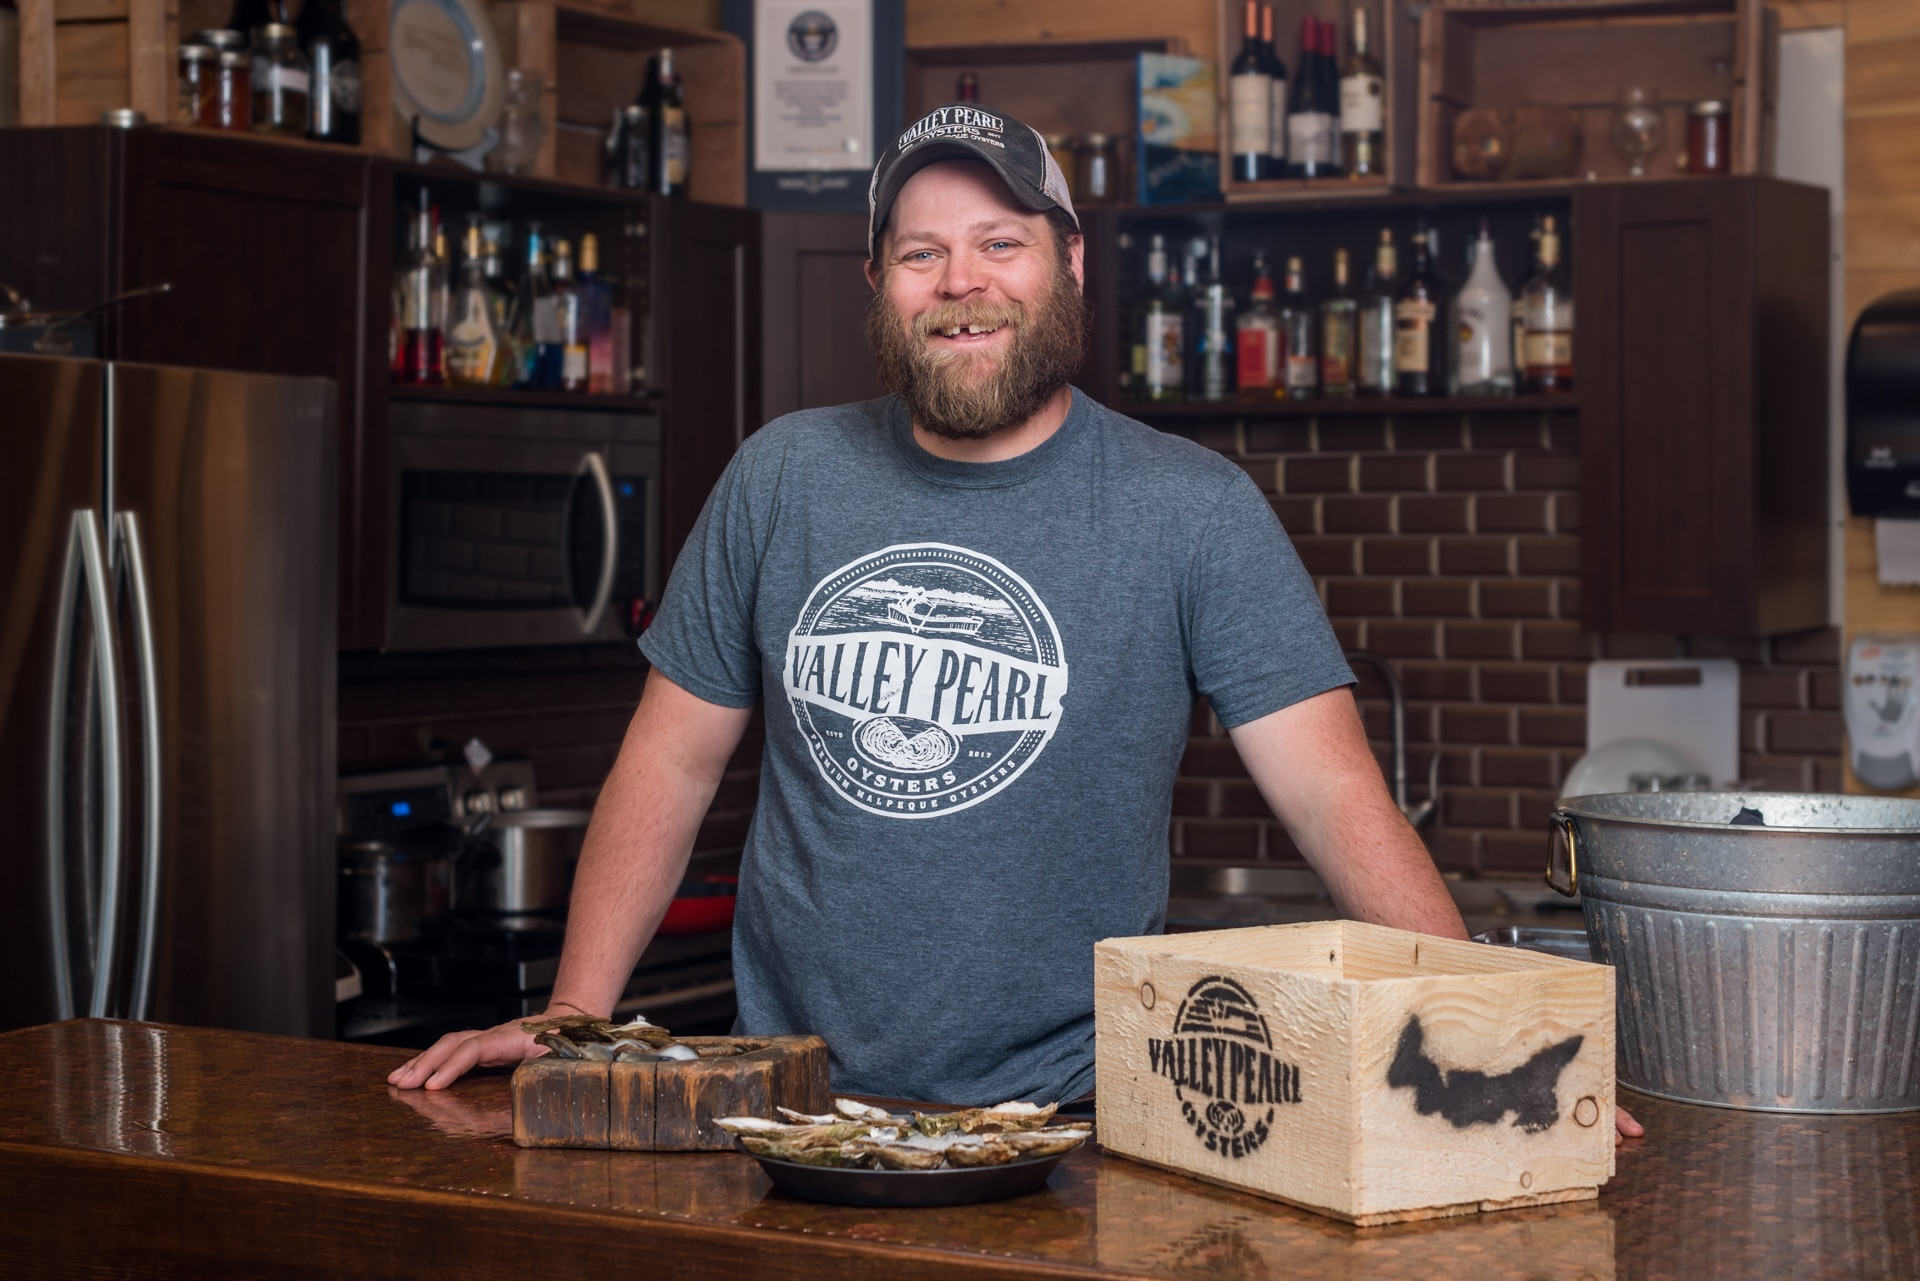 Jeff Noye, Valley Pearl Oyster Company